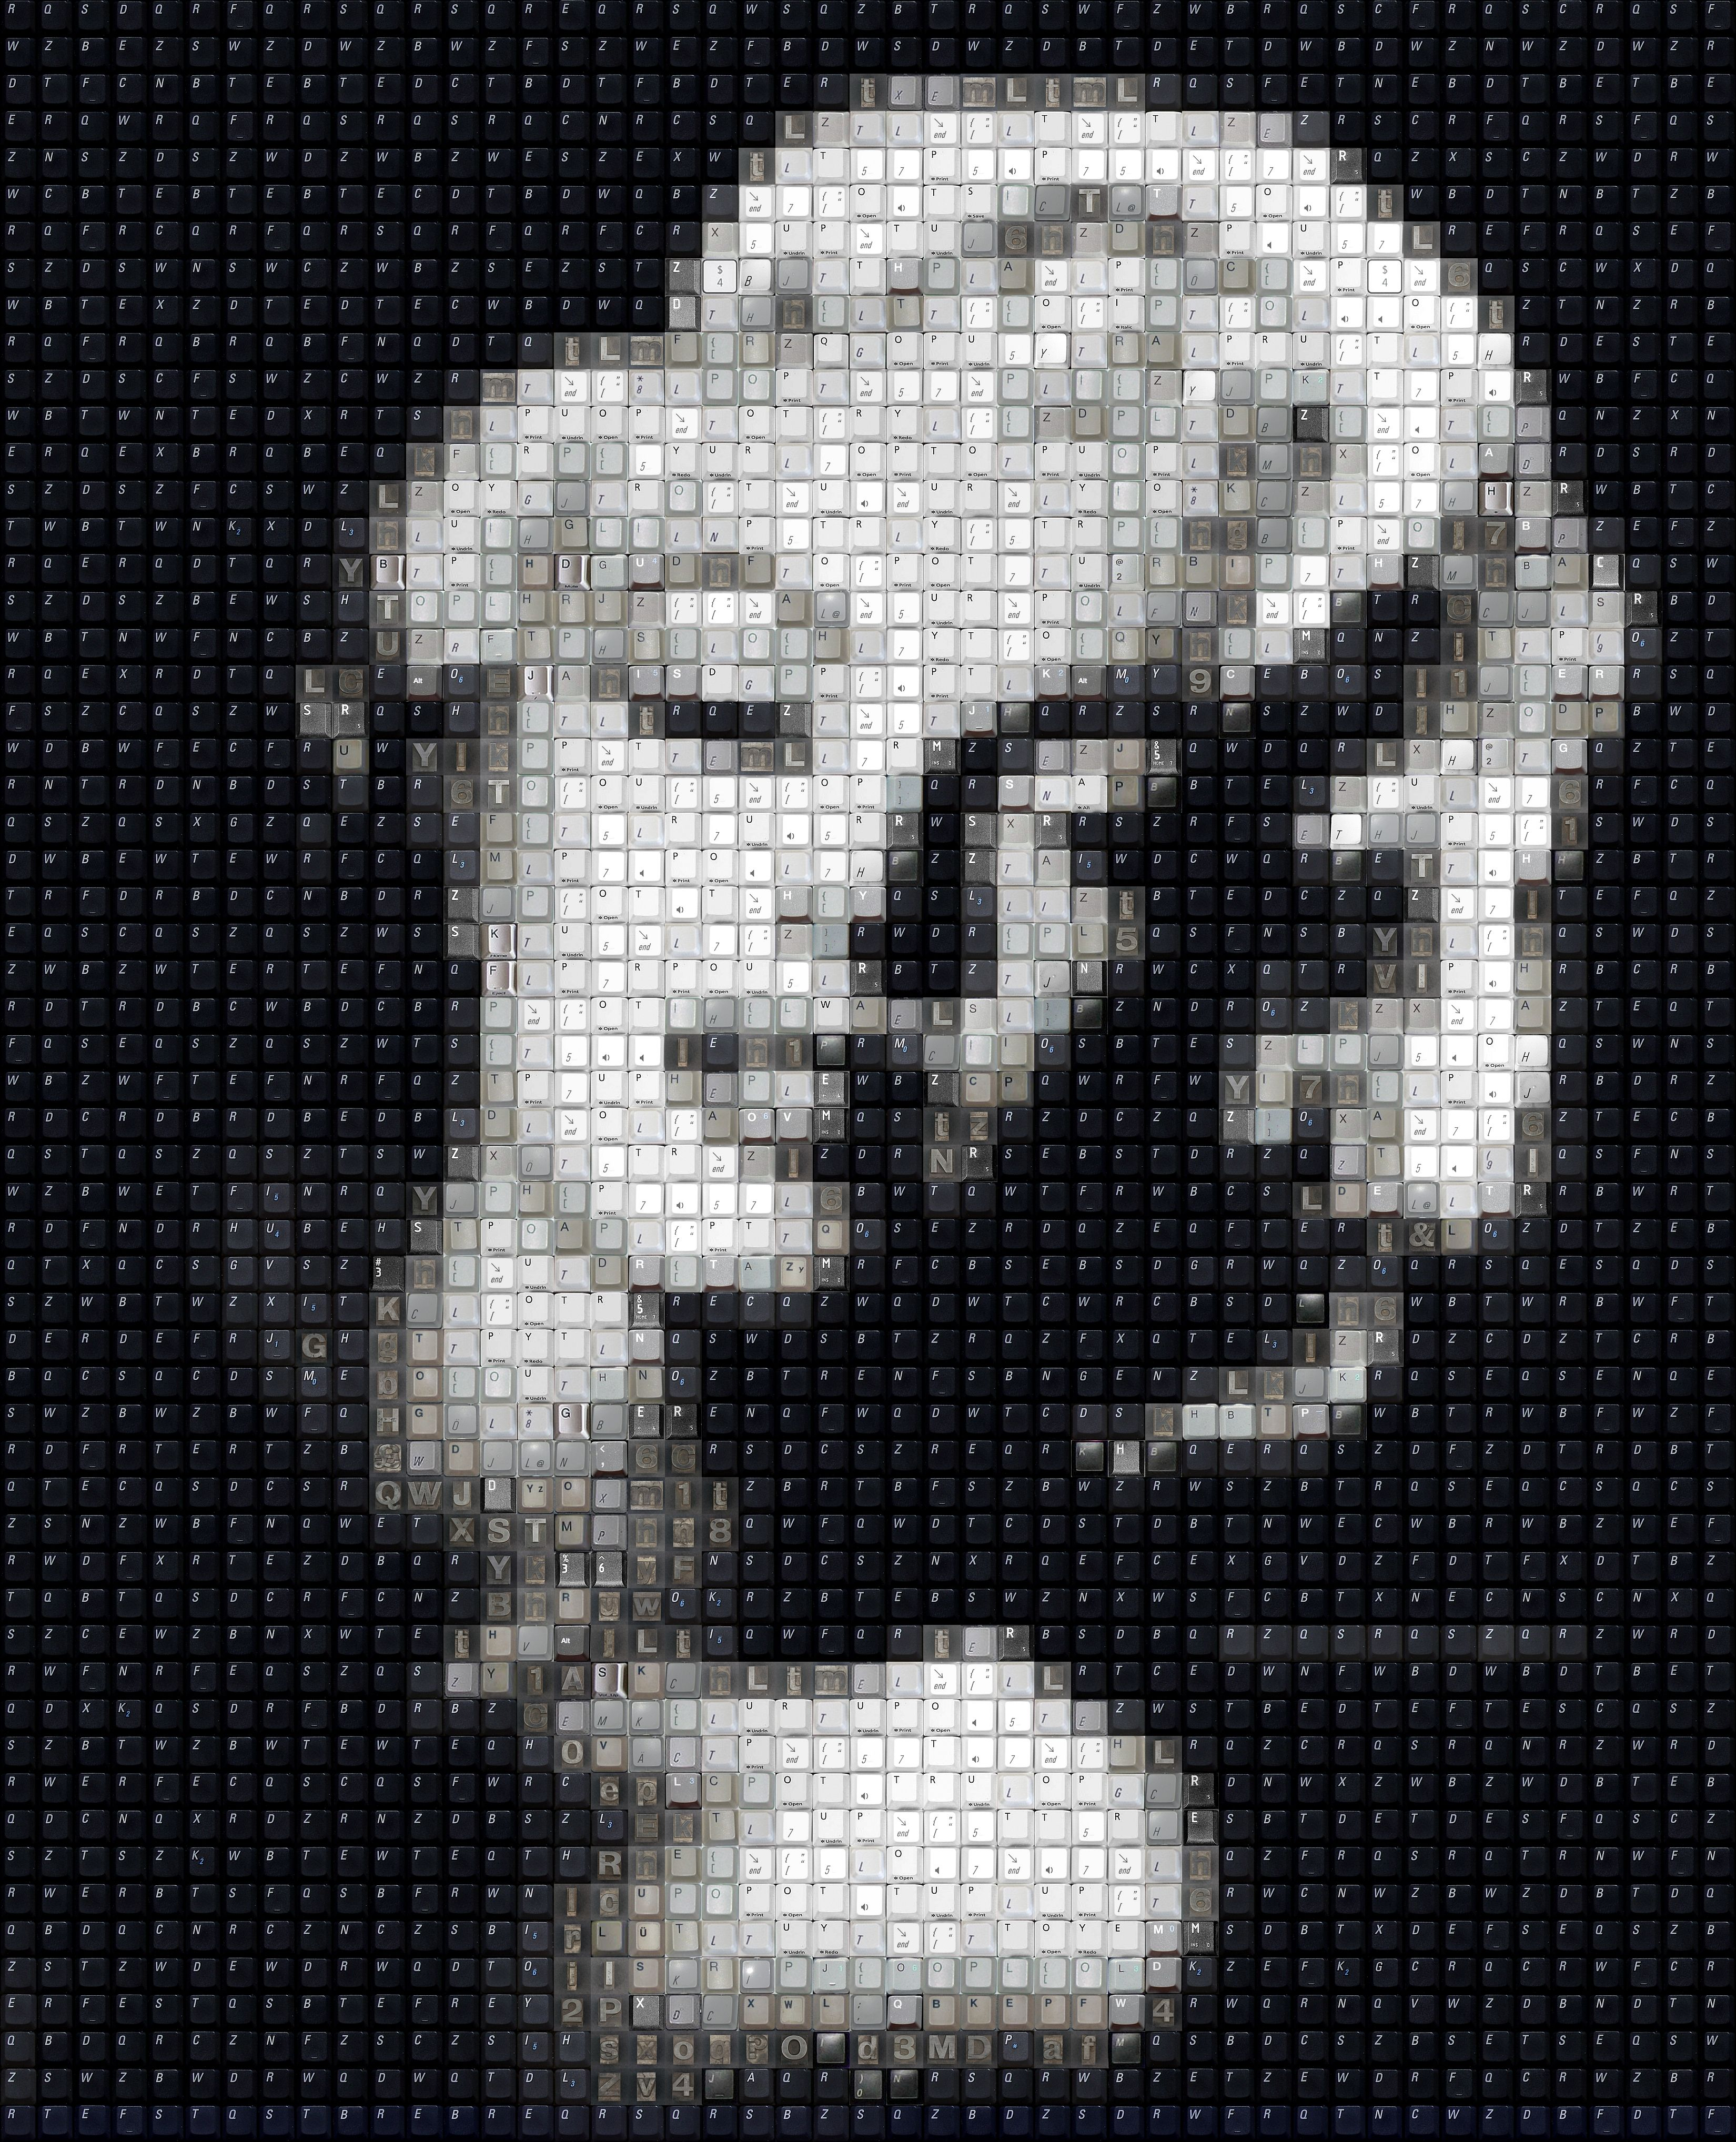 c698e24d81 WBK Marilyn Monroe by *workbyknight on deviantART ~ Click through to see  zoomed image & how this image is made of keyboard keys!